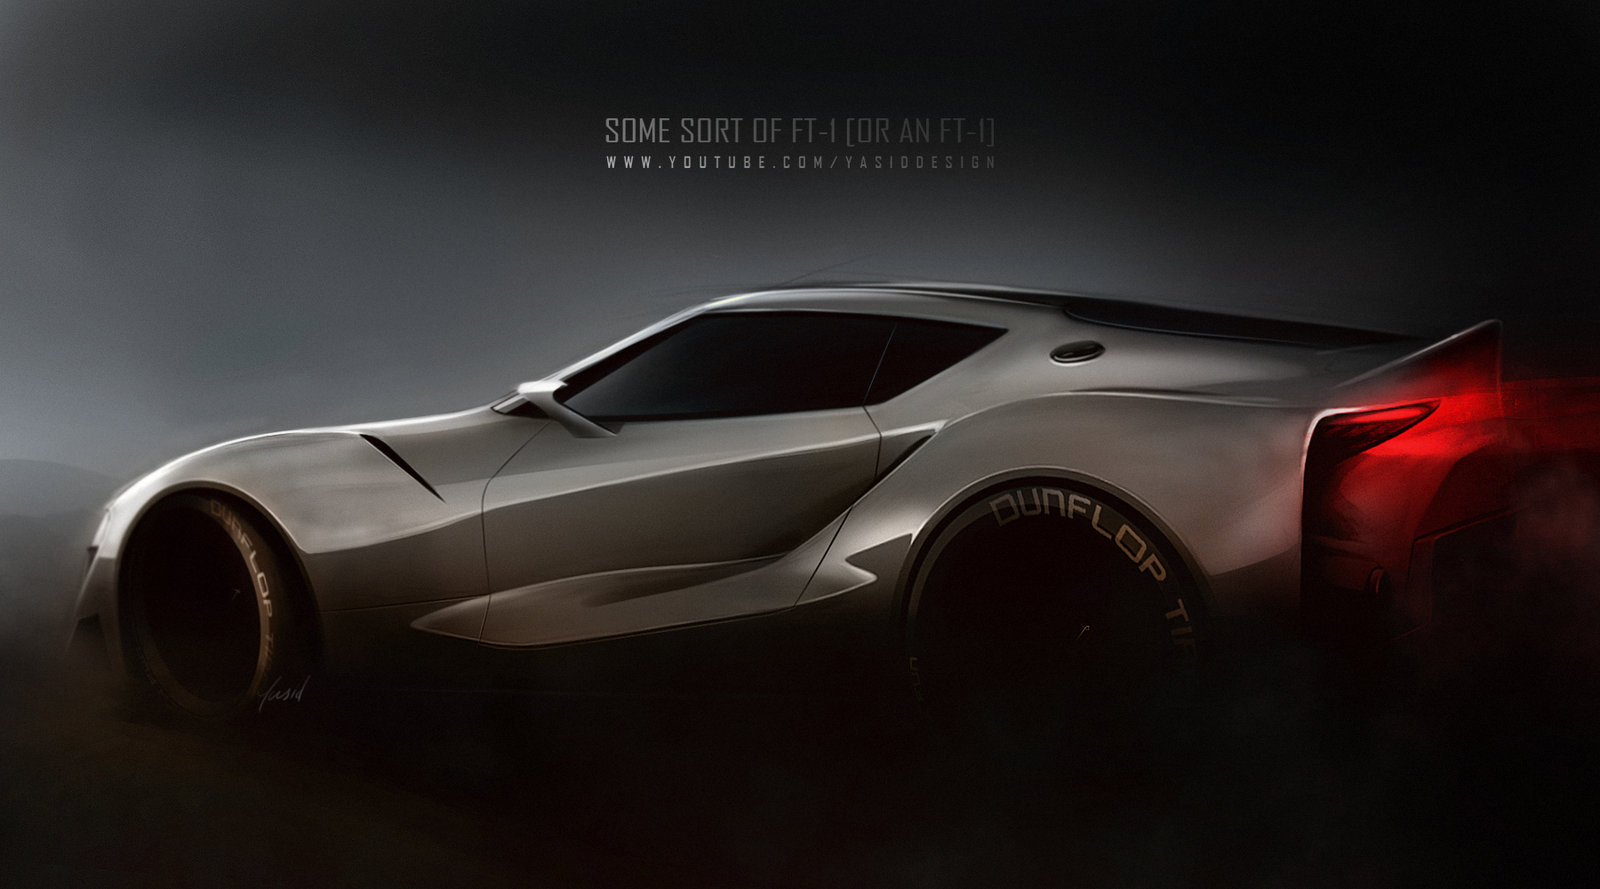 Sketching /rendering a Toyota FT-1 concept from scratch